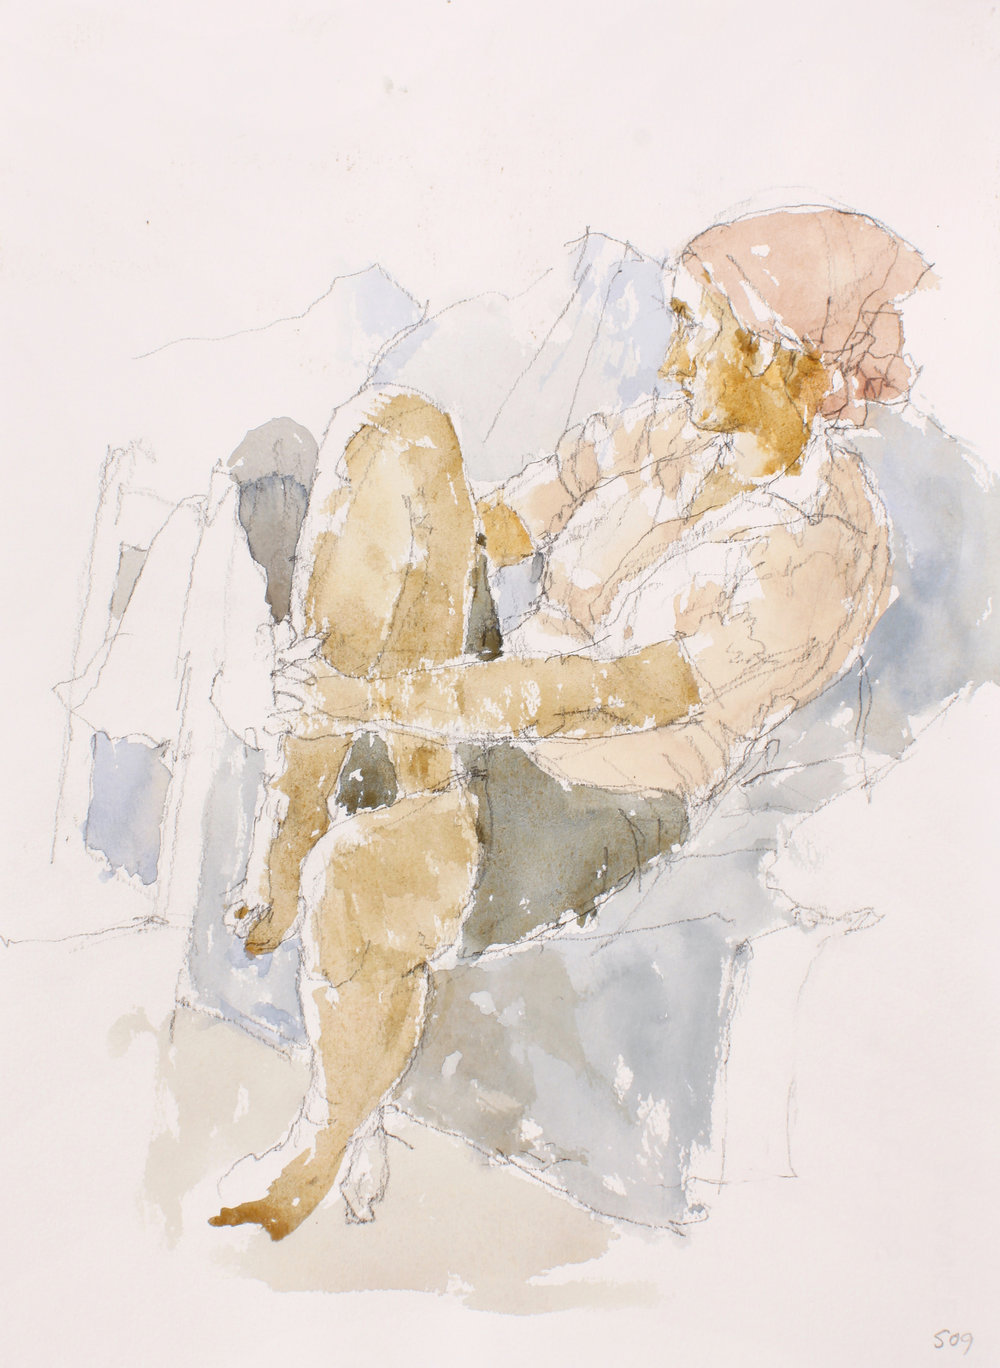 Woman with Scarf Holding Knee